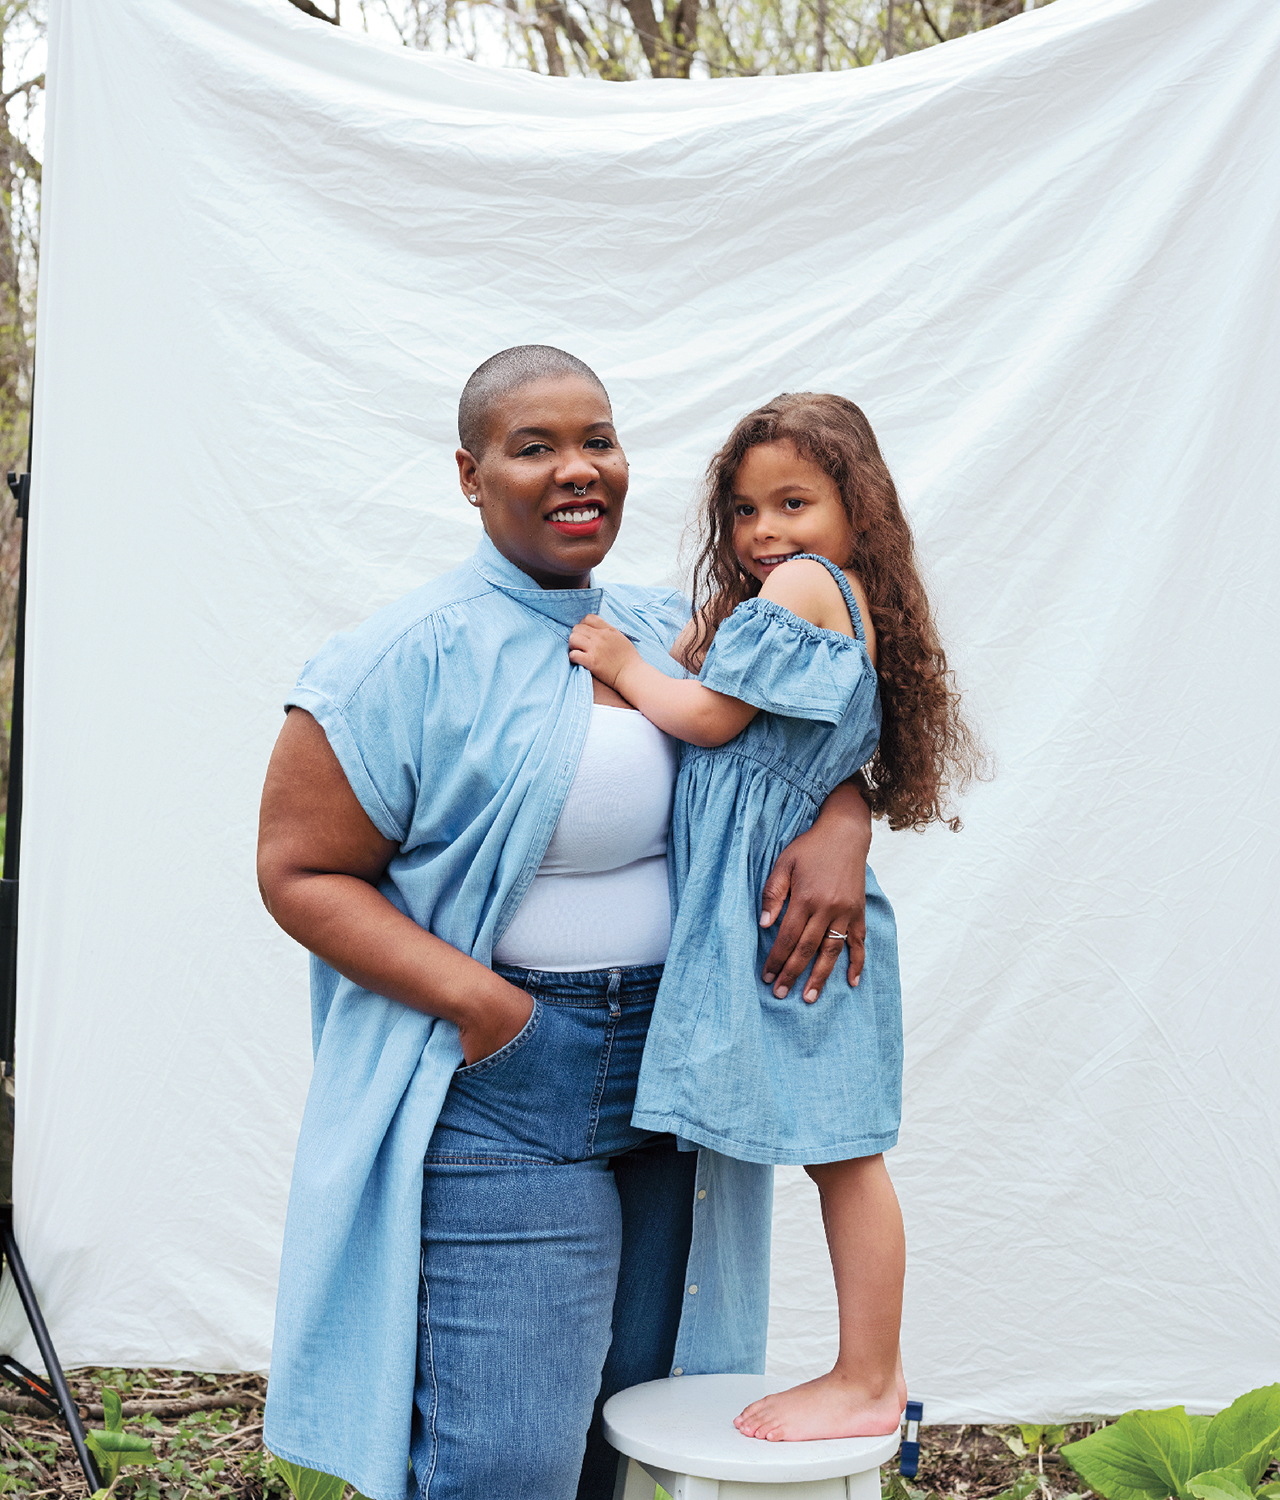 a mother and her preschool-aged daughter, who is standing on a stool, pose for the camera in an embrace